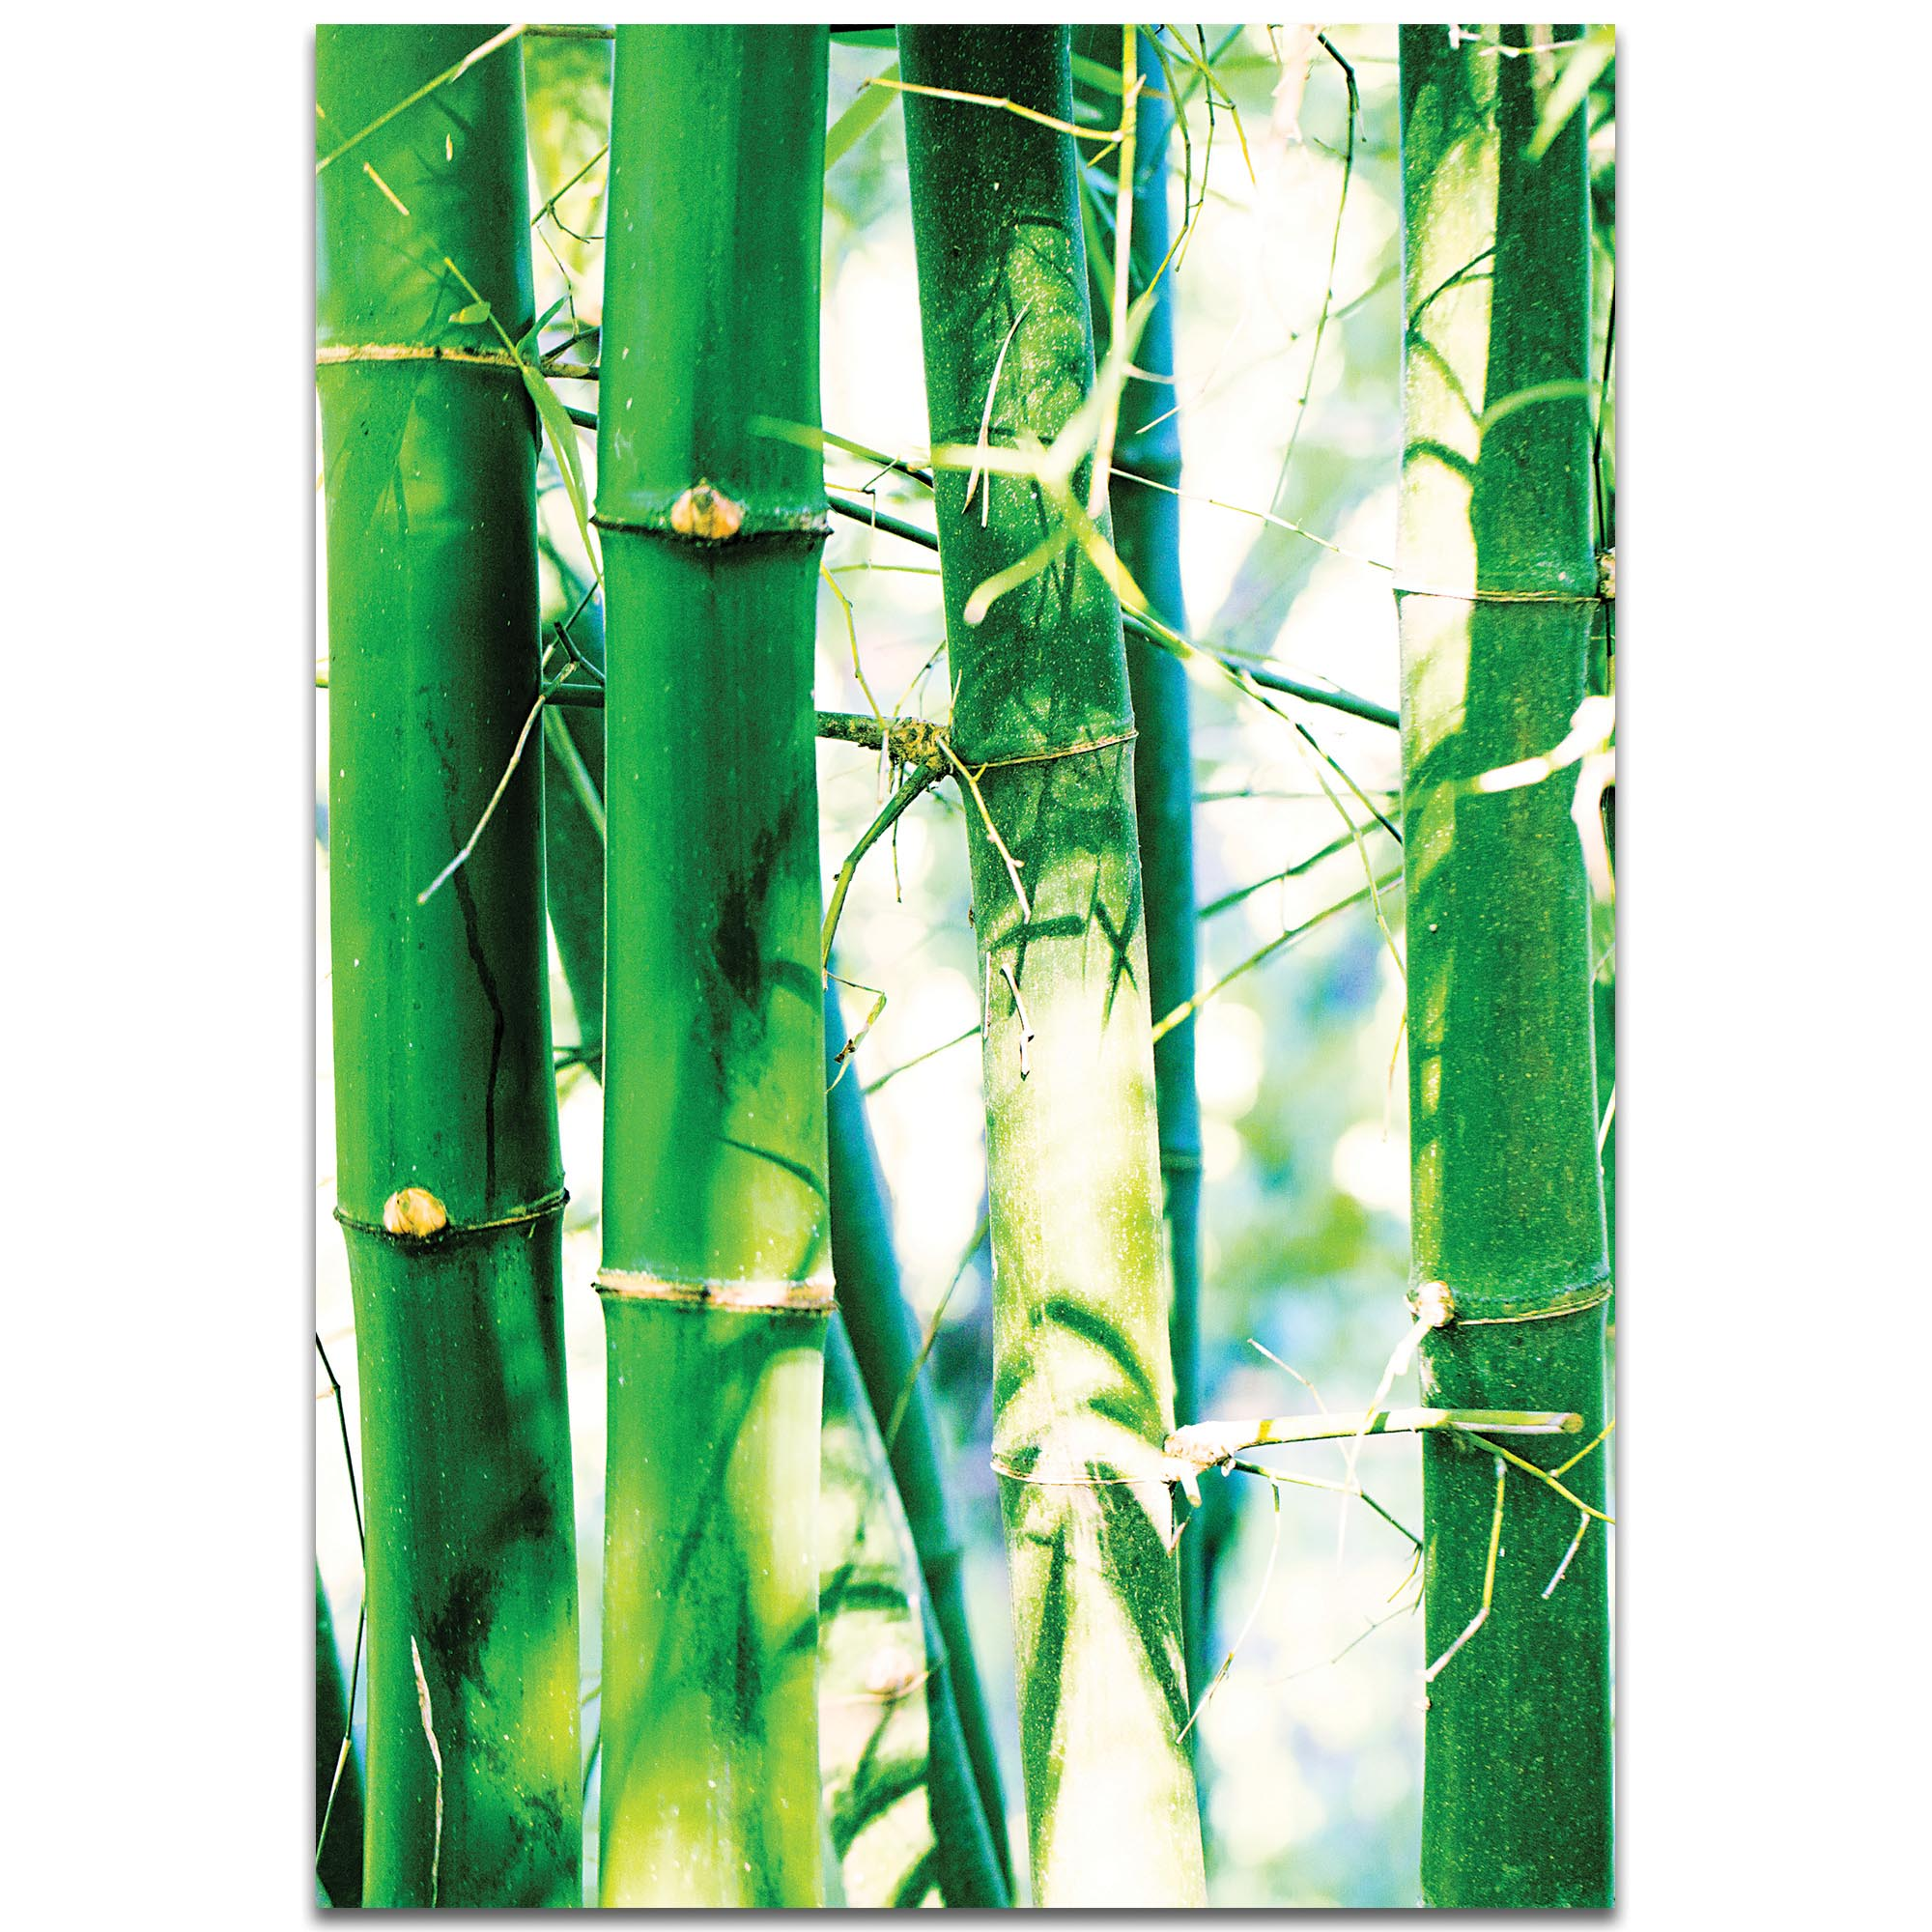 Asian Wall Art 'Bamboo Heights' - Bamboo Decor on Metal or Plexiglass